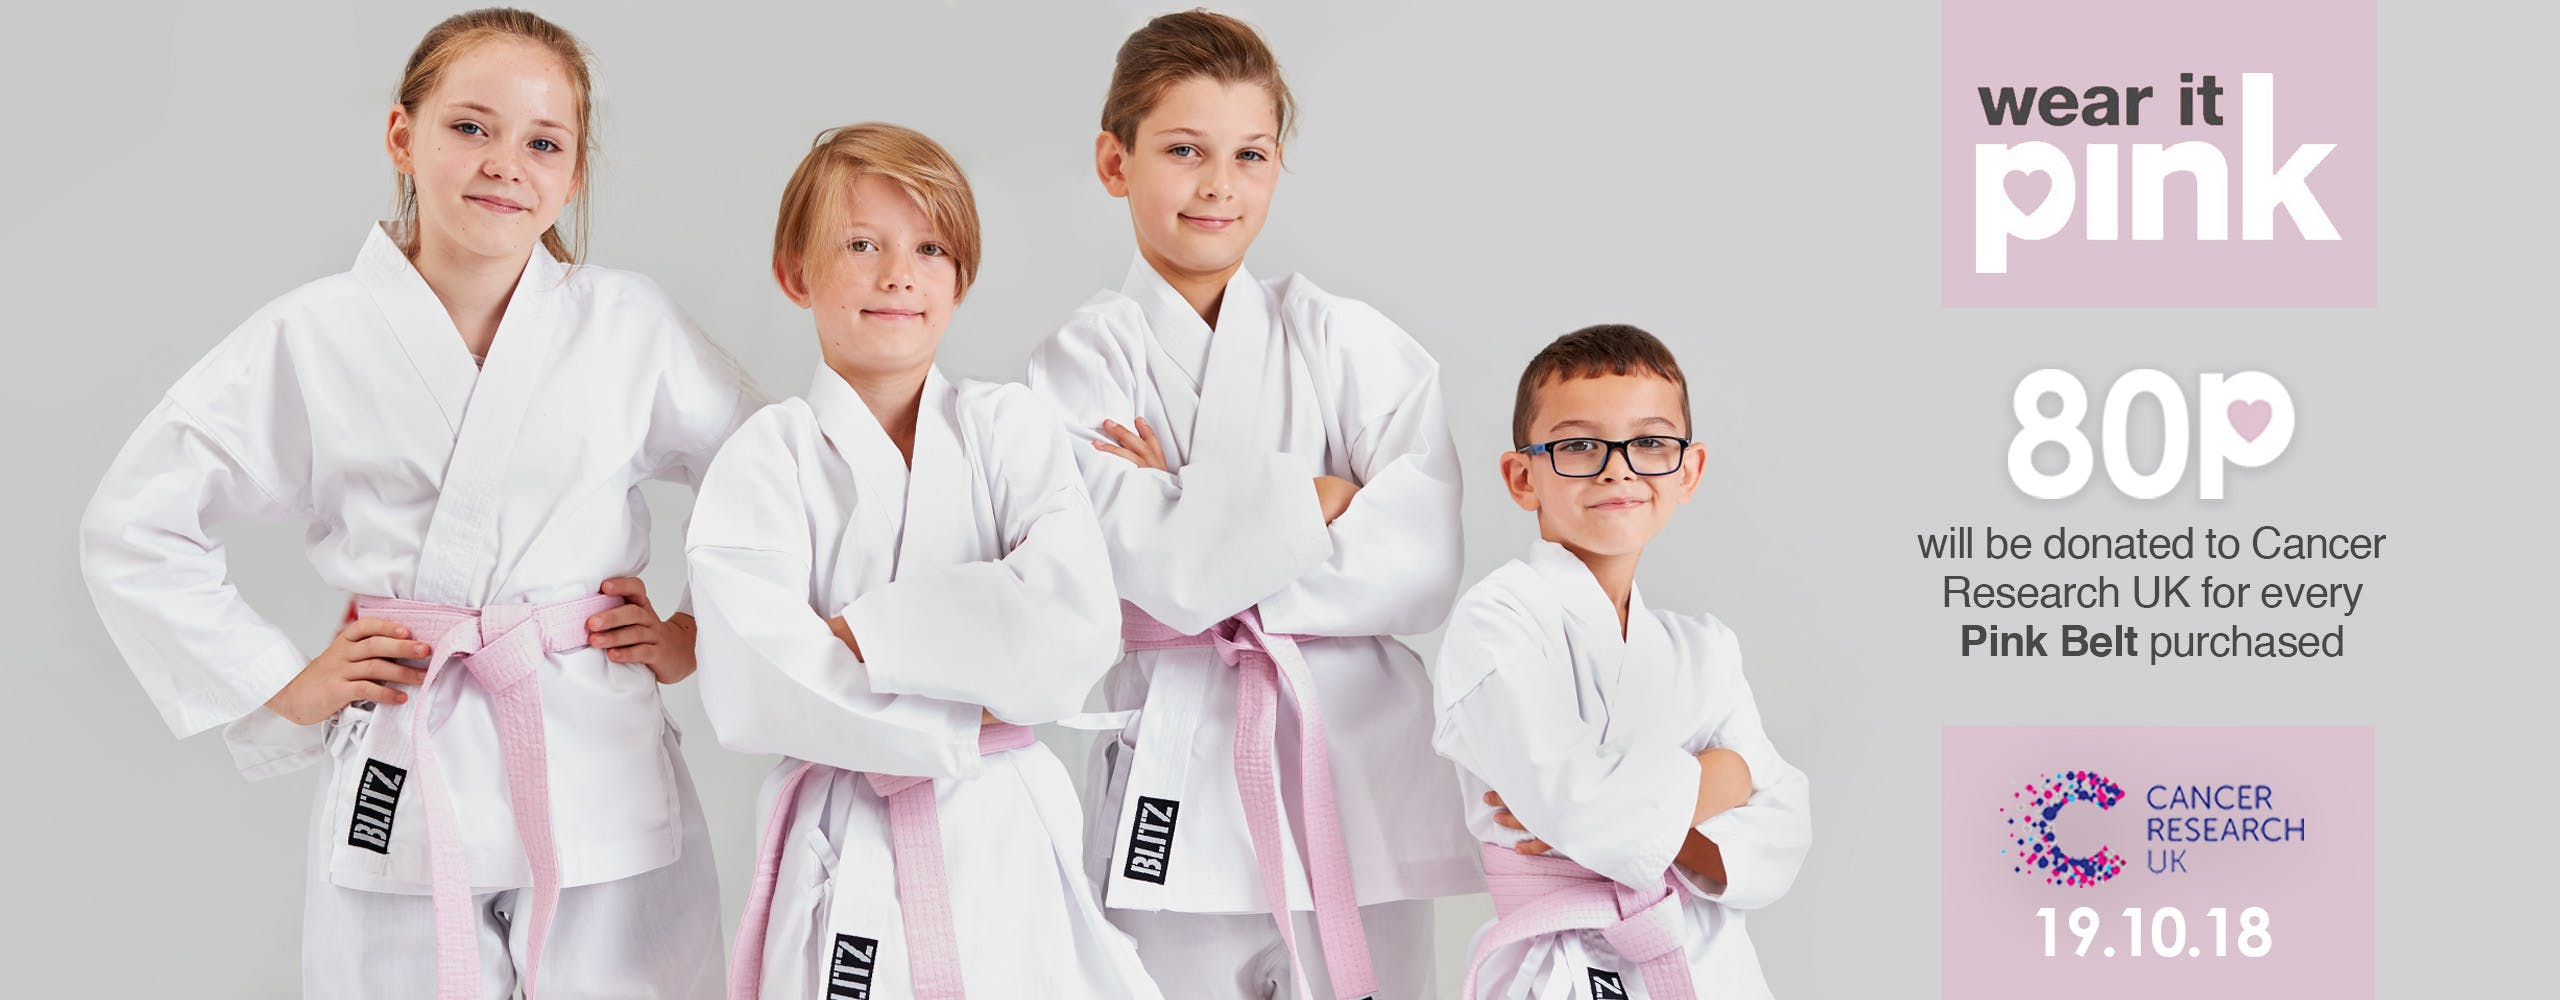 80p donated to Cancer Research UK for every Blitz Pink Belt purchased